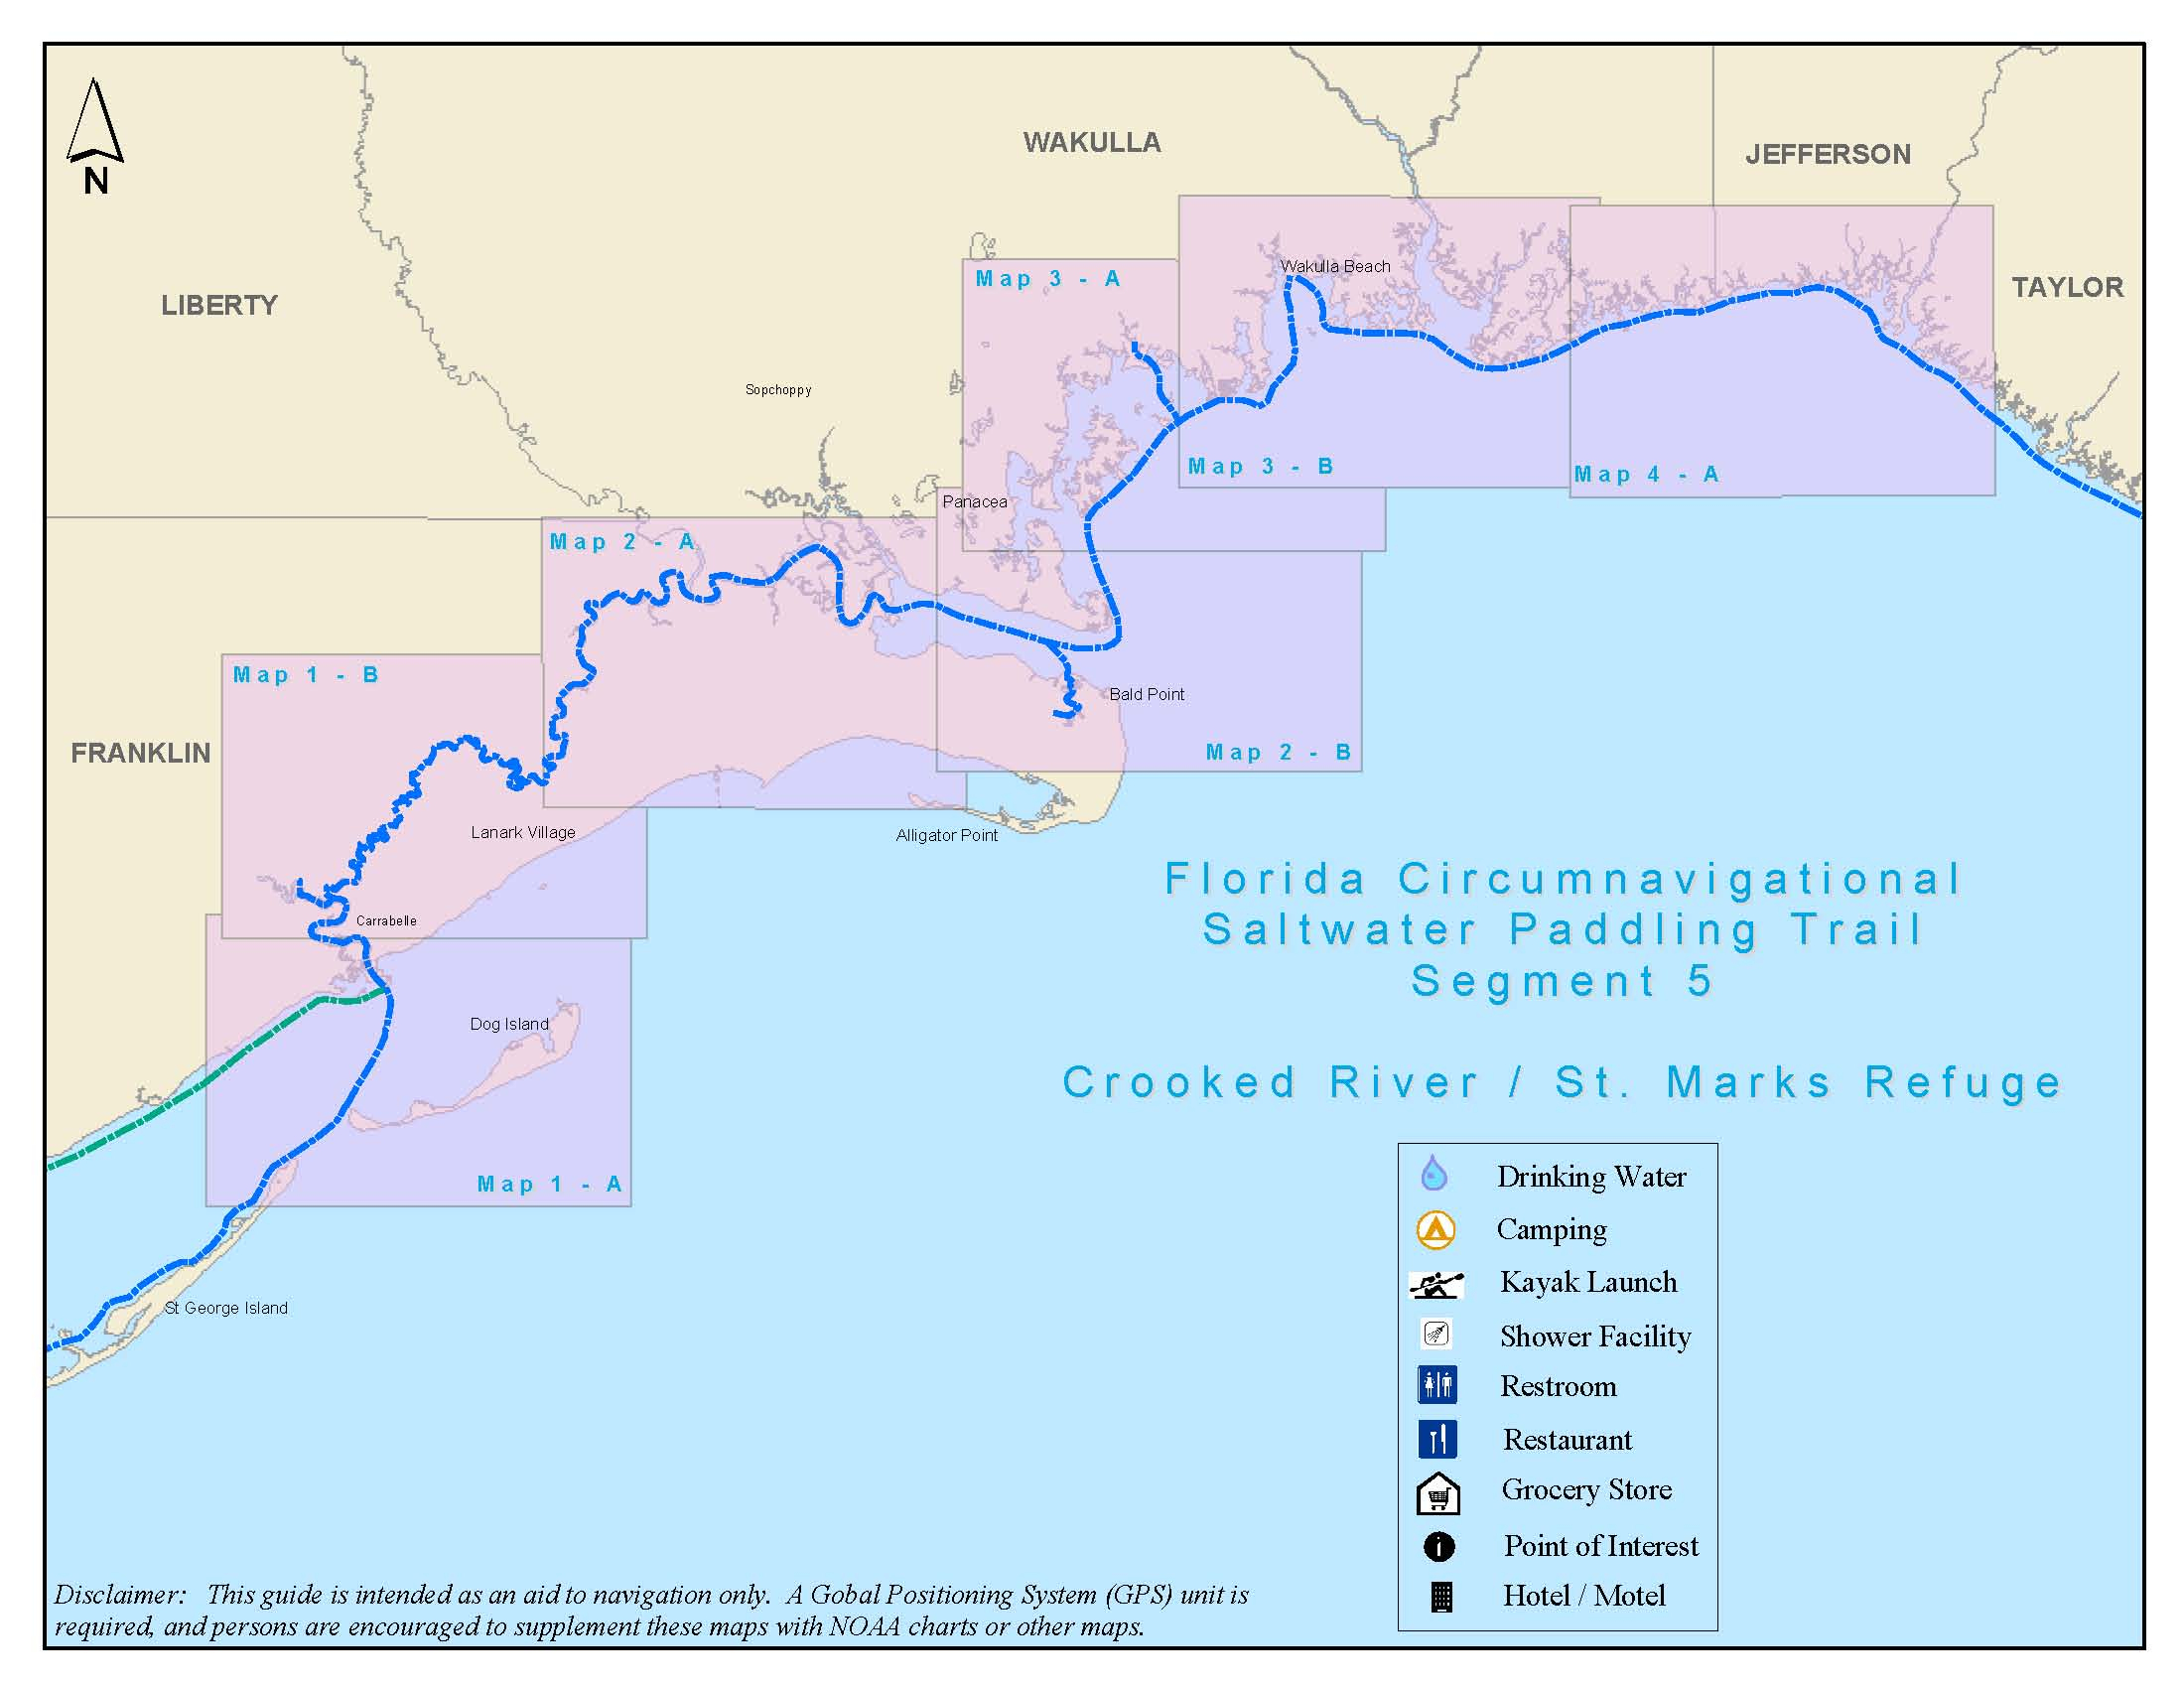 St. Marks National Wildlife Refuge | Fish And Wildlife Service - Alligator Point Florida Map